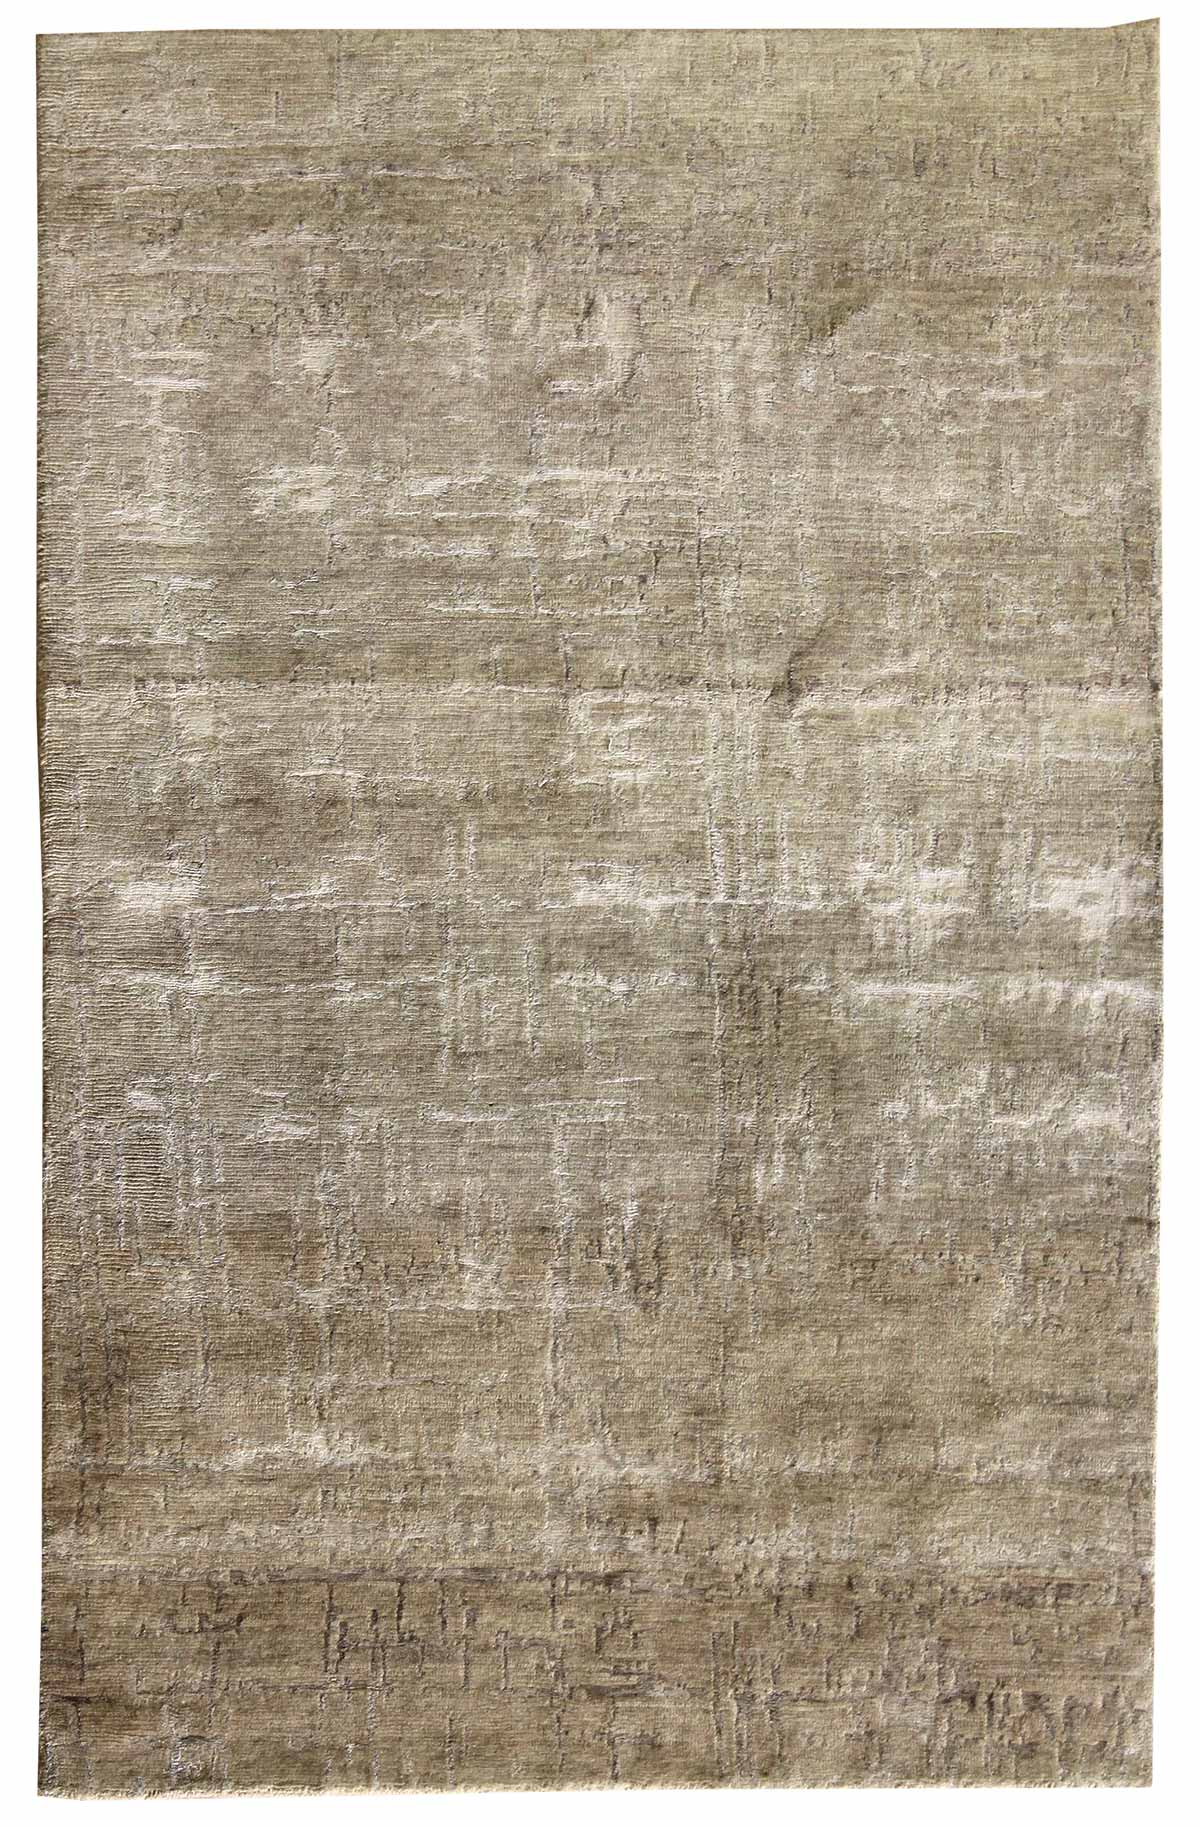 Patinated Look Handwoven Contemporary Rug